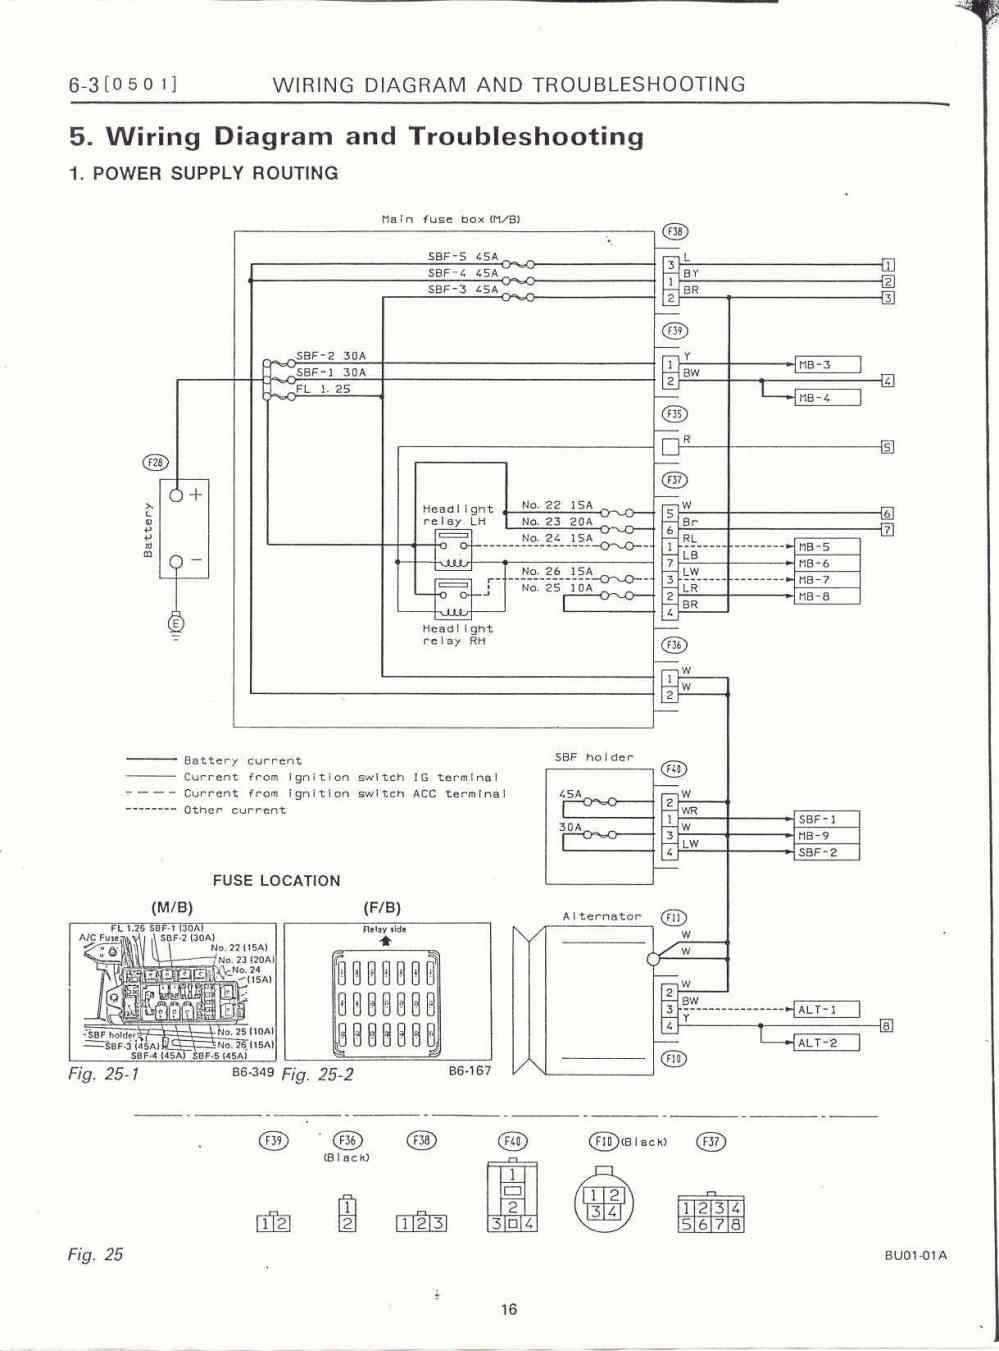 medium resolution of subaru alternator wiring diagram hecho wiring diagramsubaru alternator wiring diagram hecho wiring diagramssubaru alternator wiring diagram